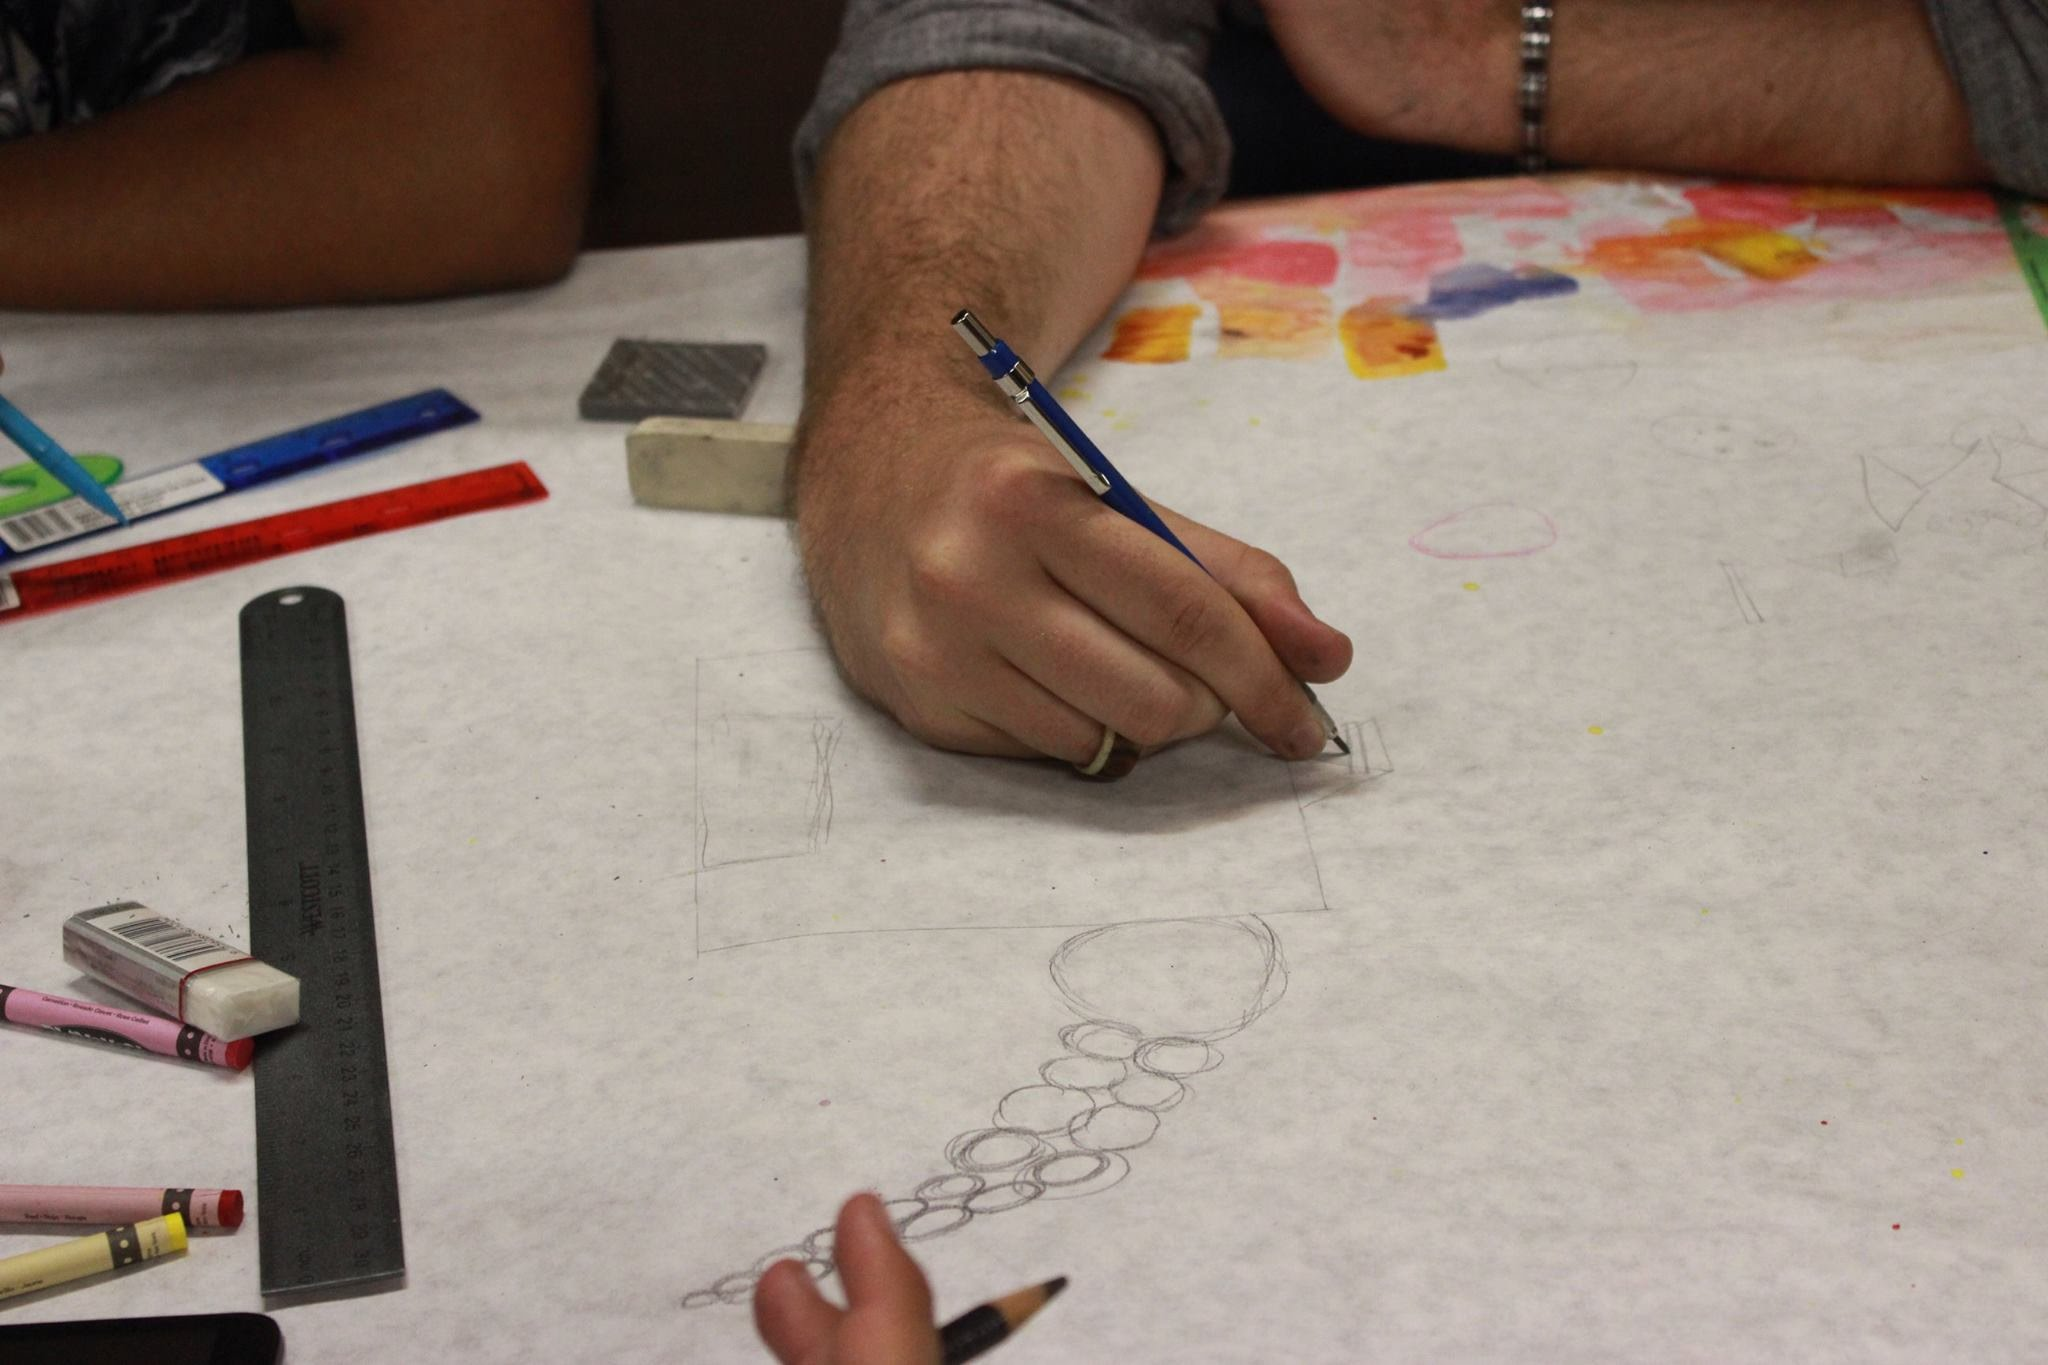 Participants Draw with Pencil Before Coloring Designs